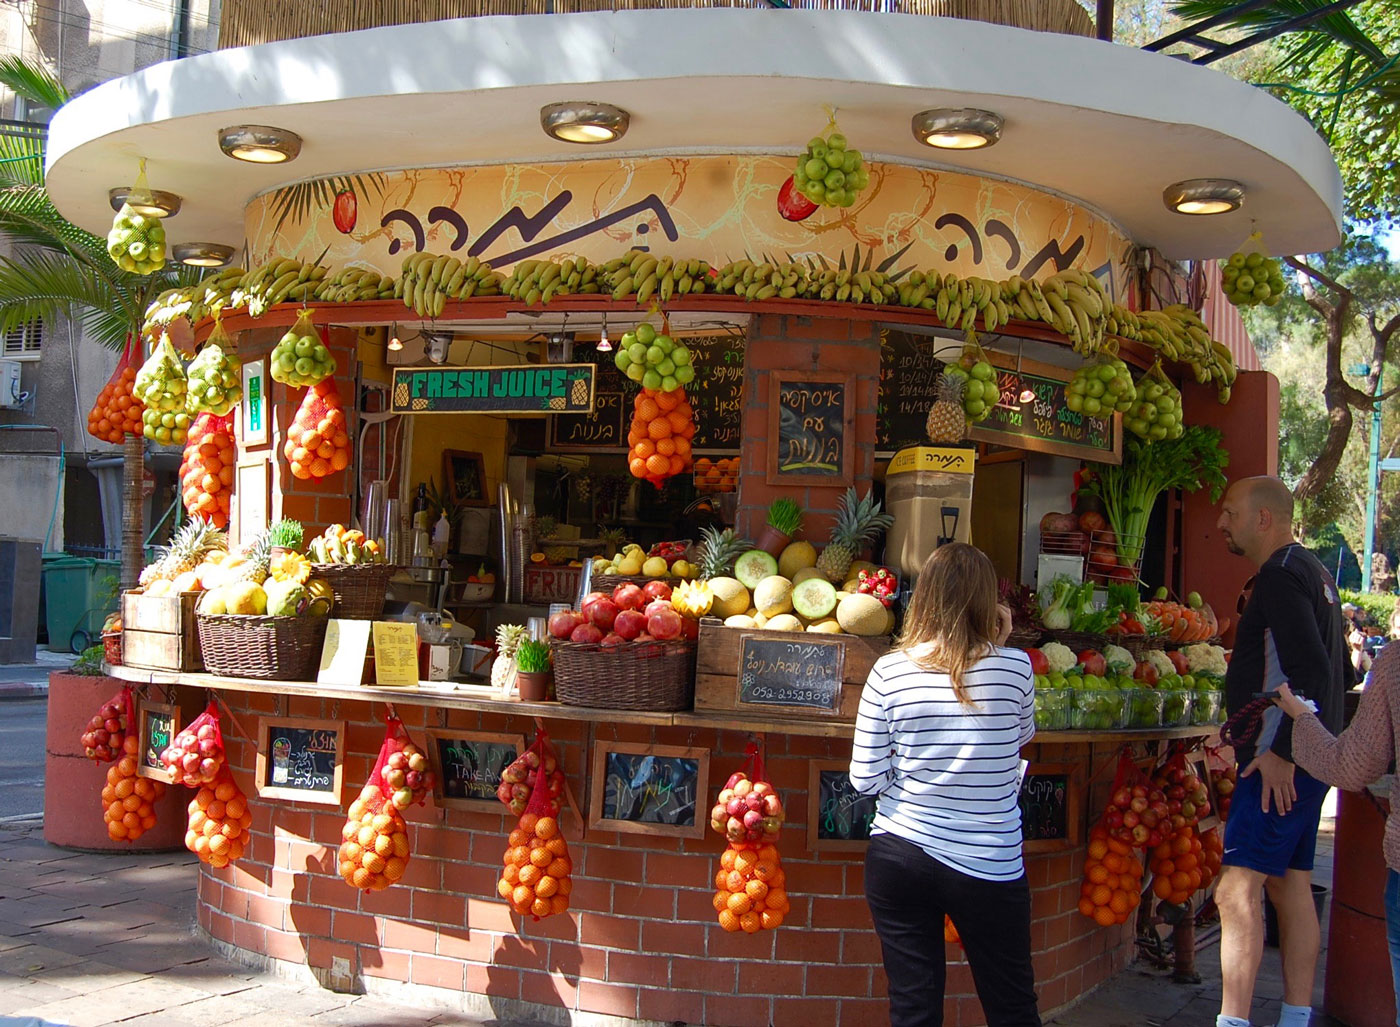 Juice Stands in Tel Aviv